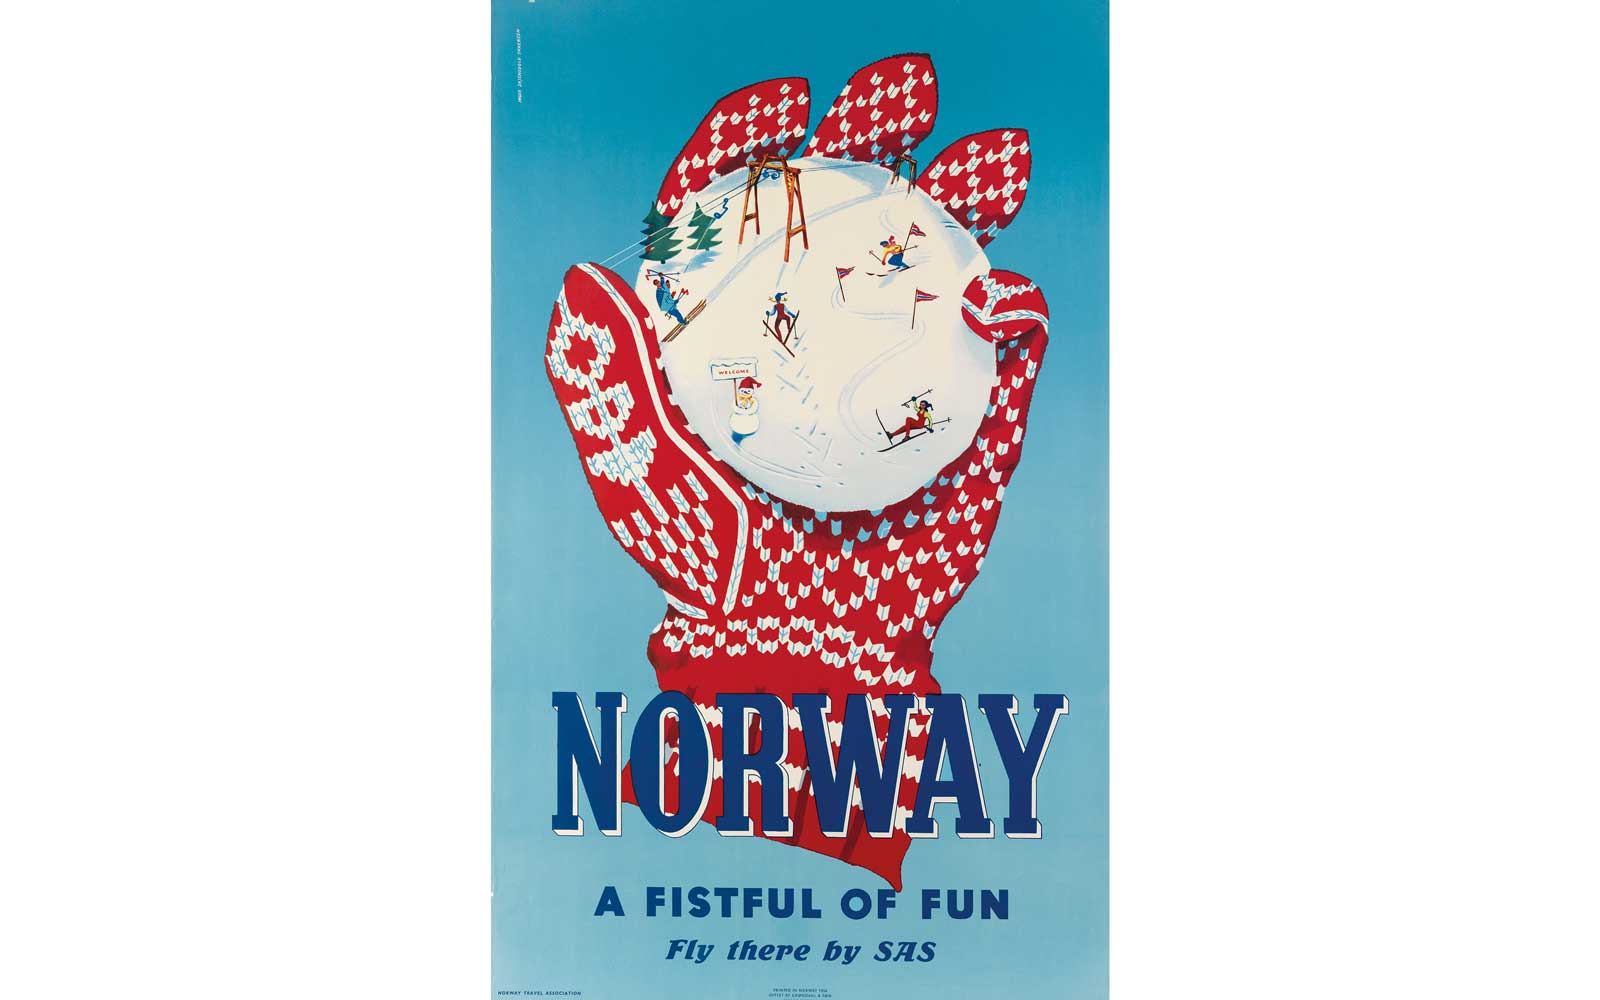 Norway: a Fistful of Fun